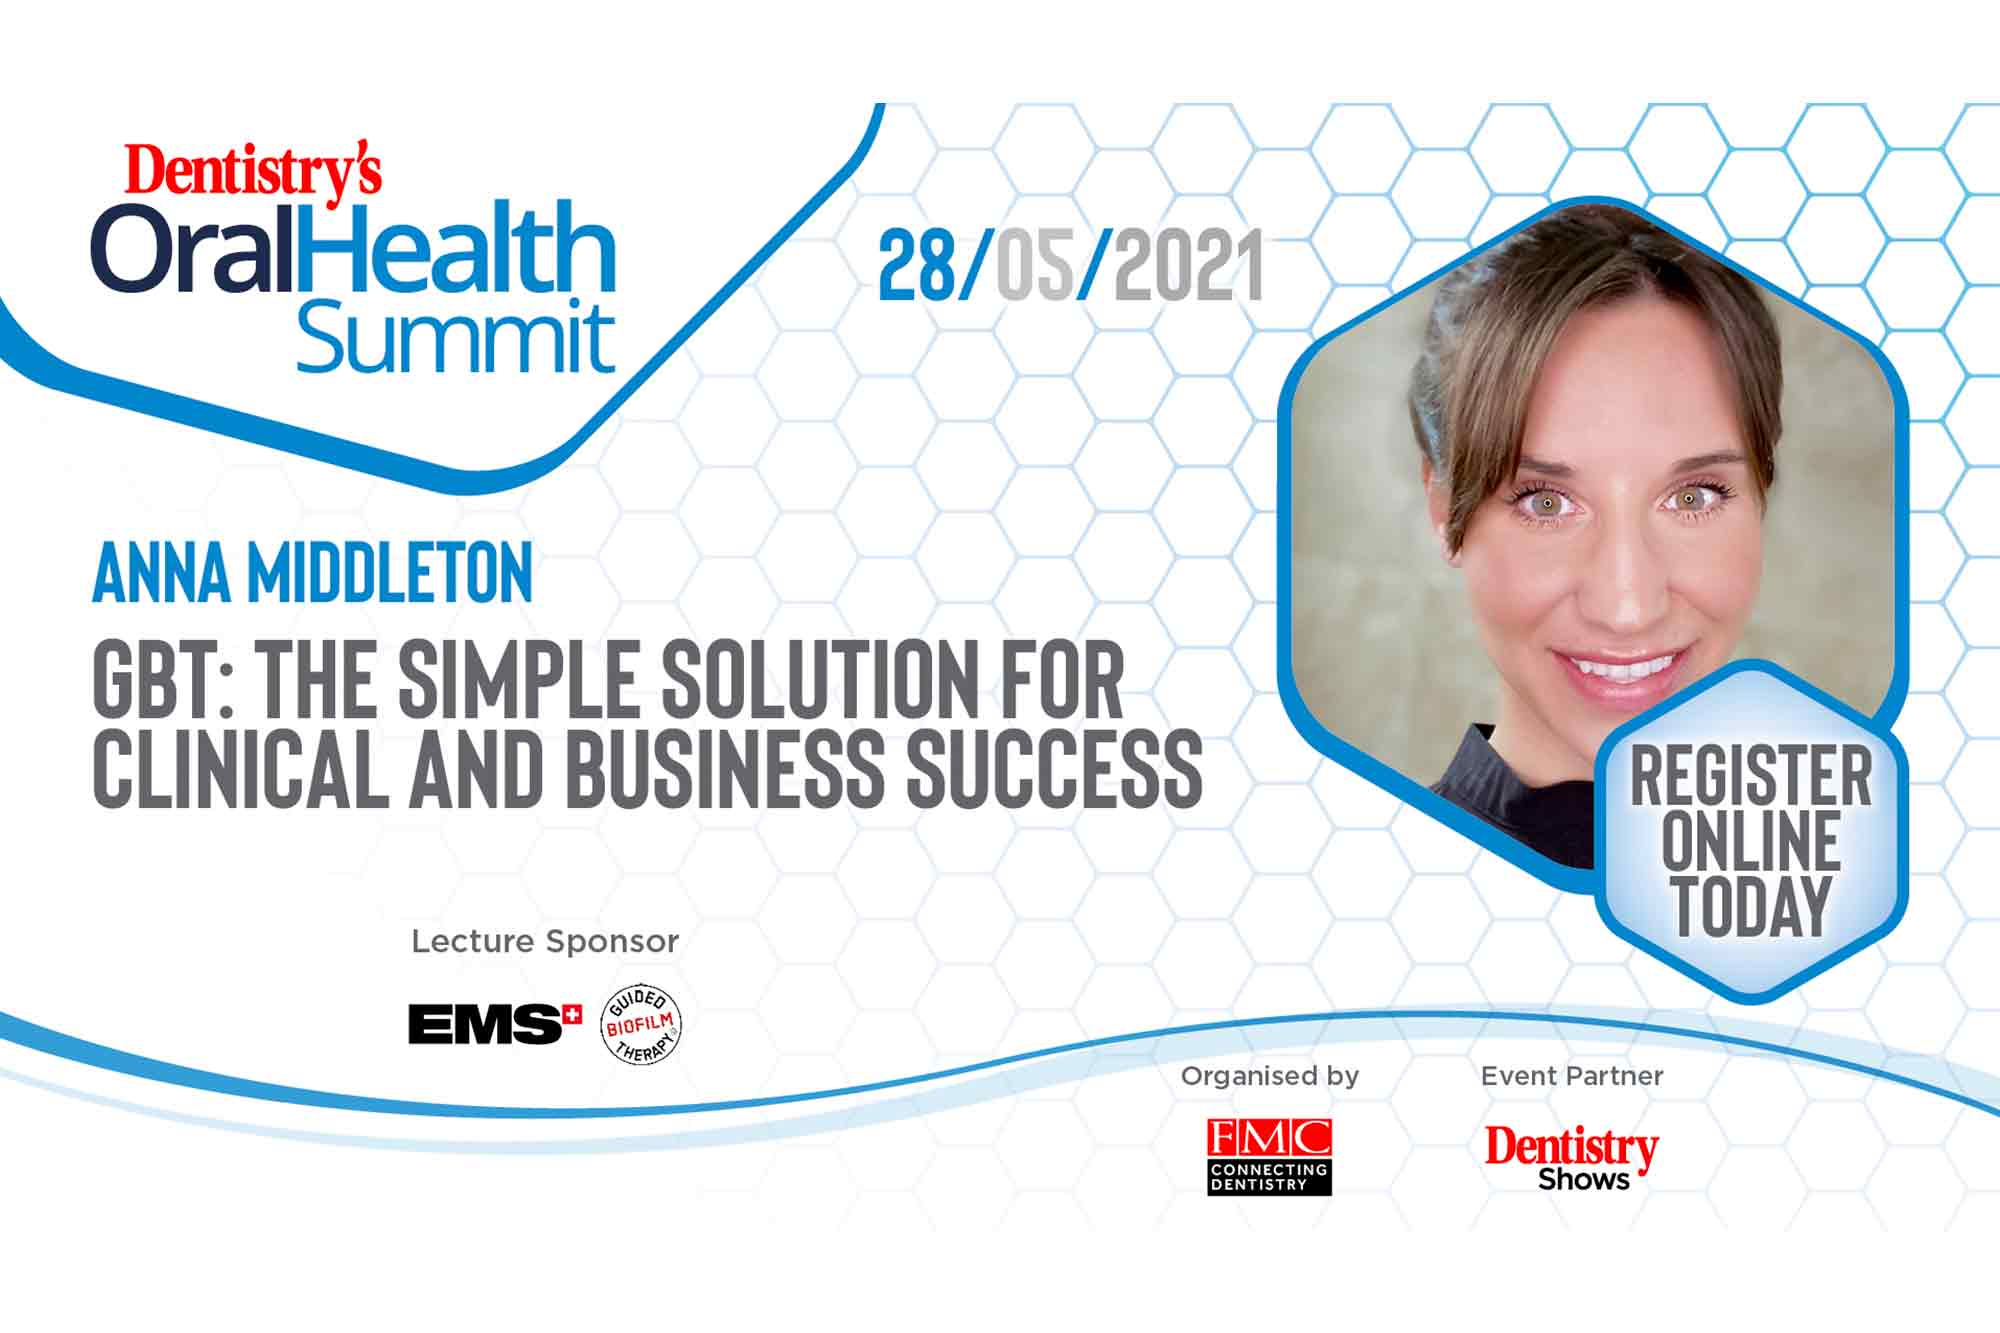 Catch a lecture on GBT with Anna Middleton at our first ever Oral Health Summit at the end of this month